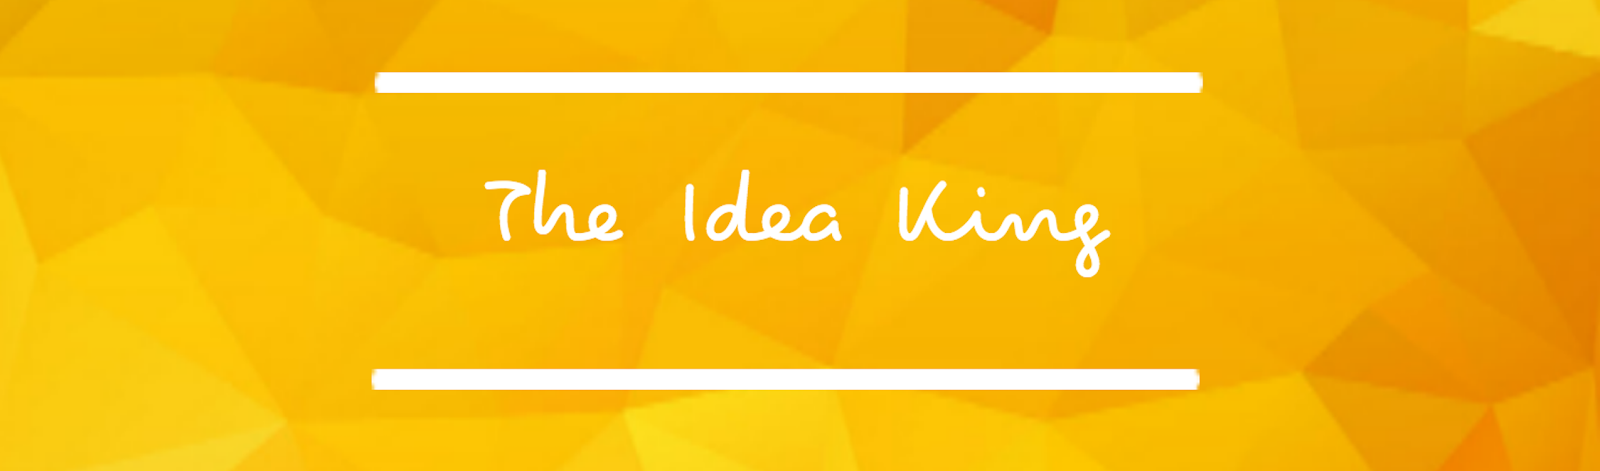 The Idea King